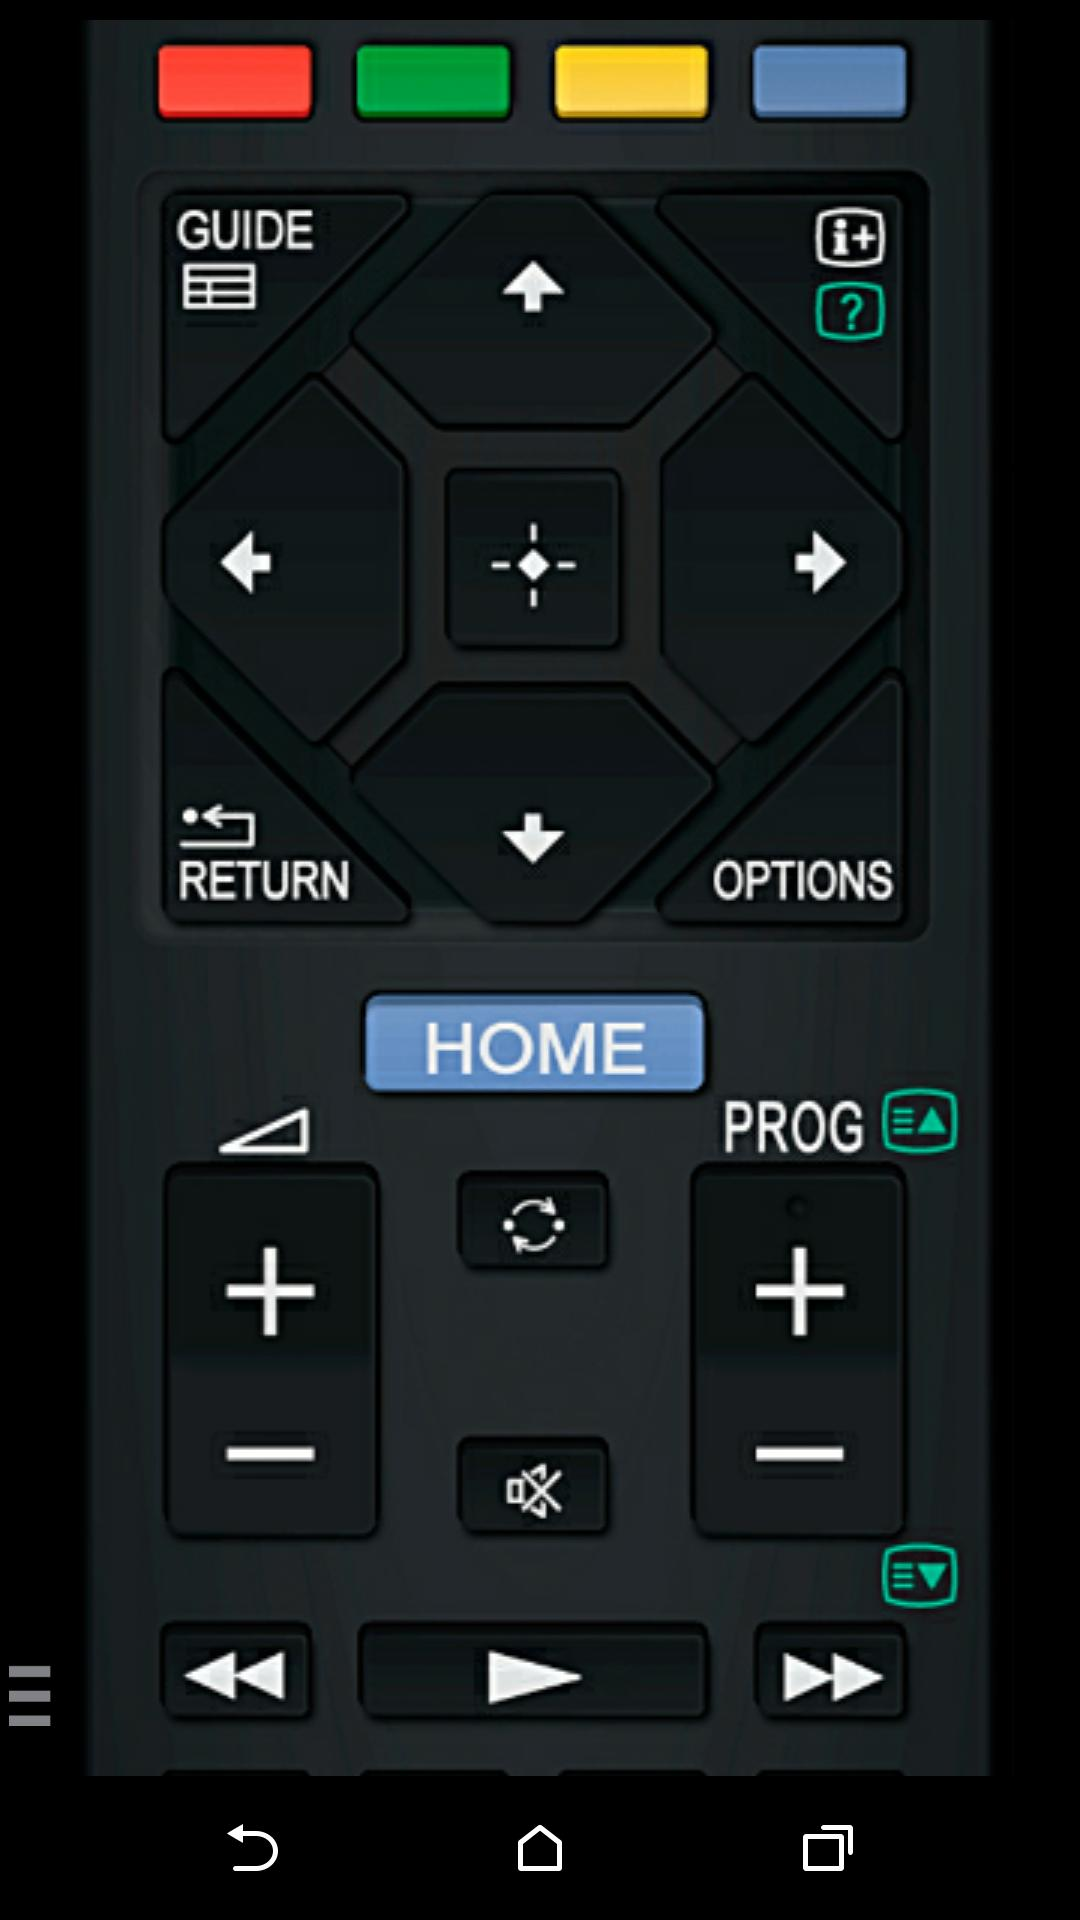 TV Remote for Sony TV (WiFi & IR remote control) for Android